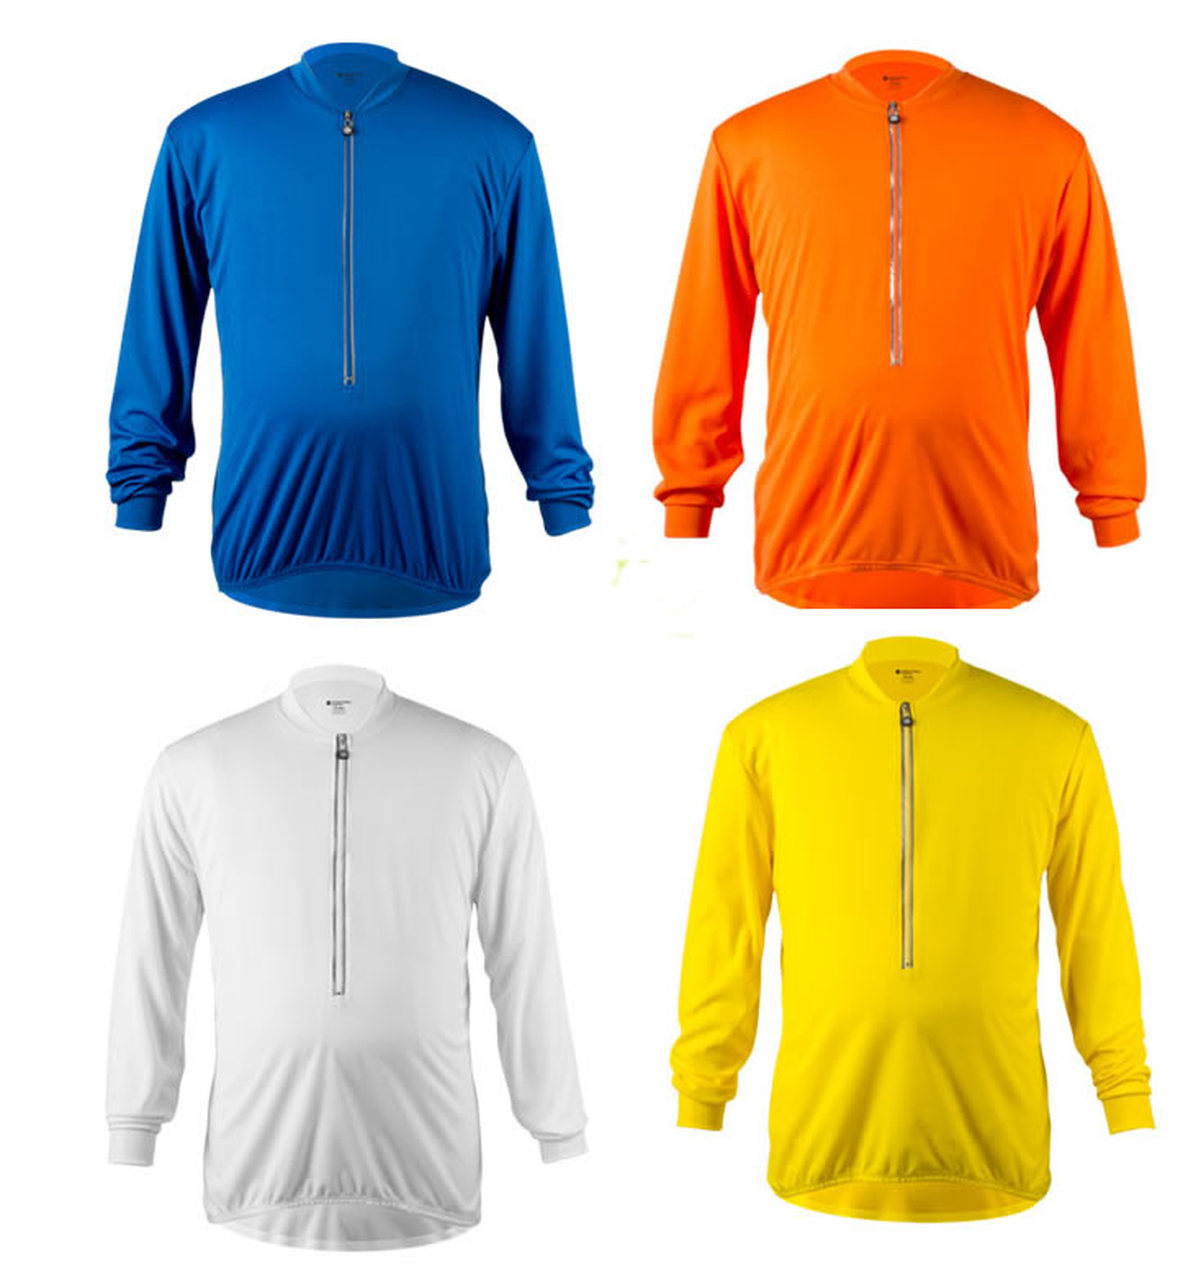 Big Man's Long Sleeve Solid Color Cycling Jerseys